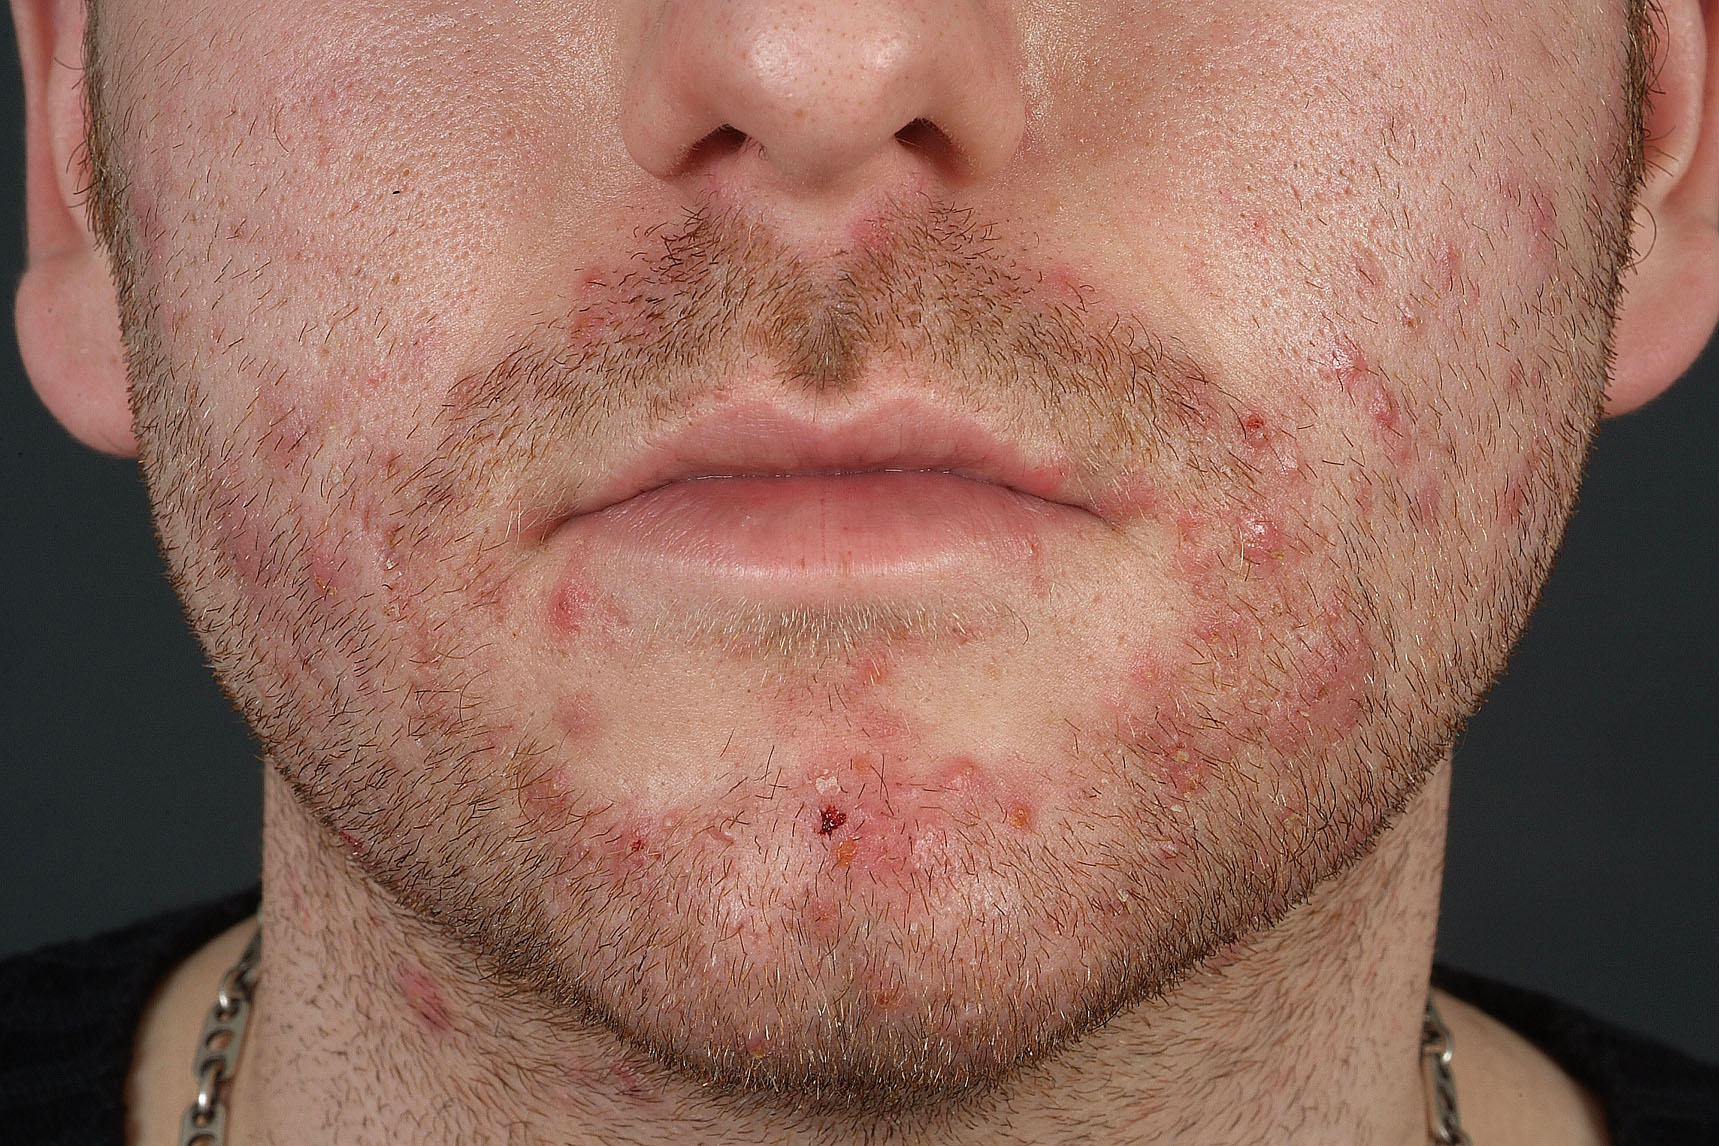 folliculitis caused by steroid cream